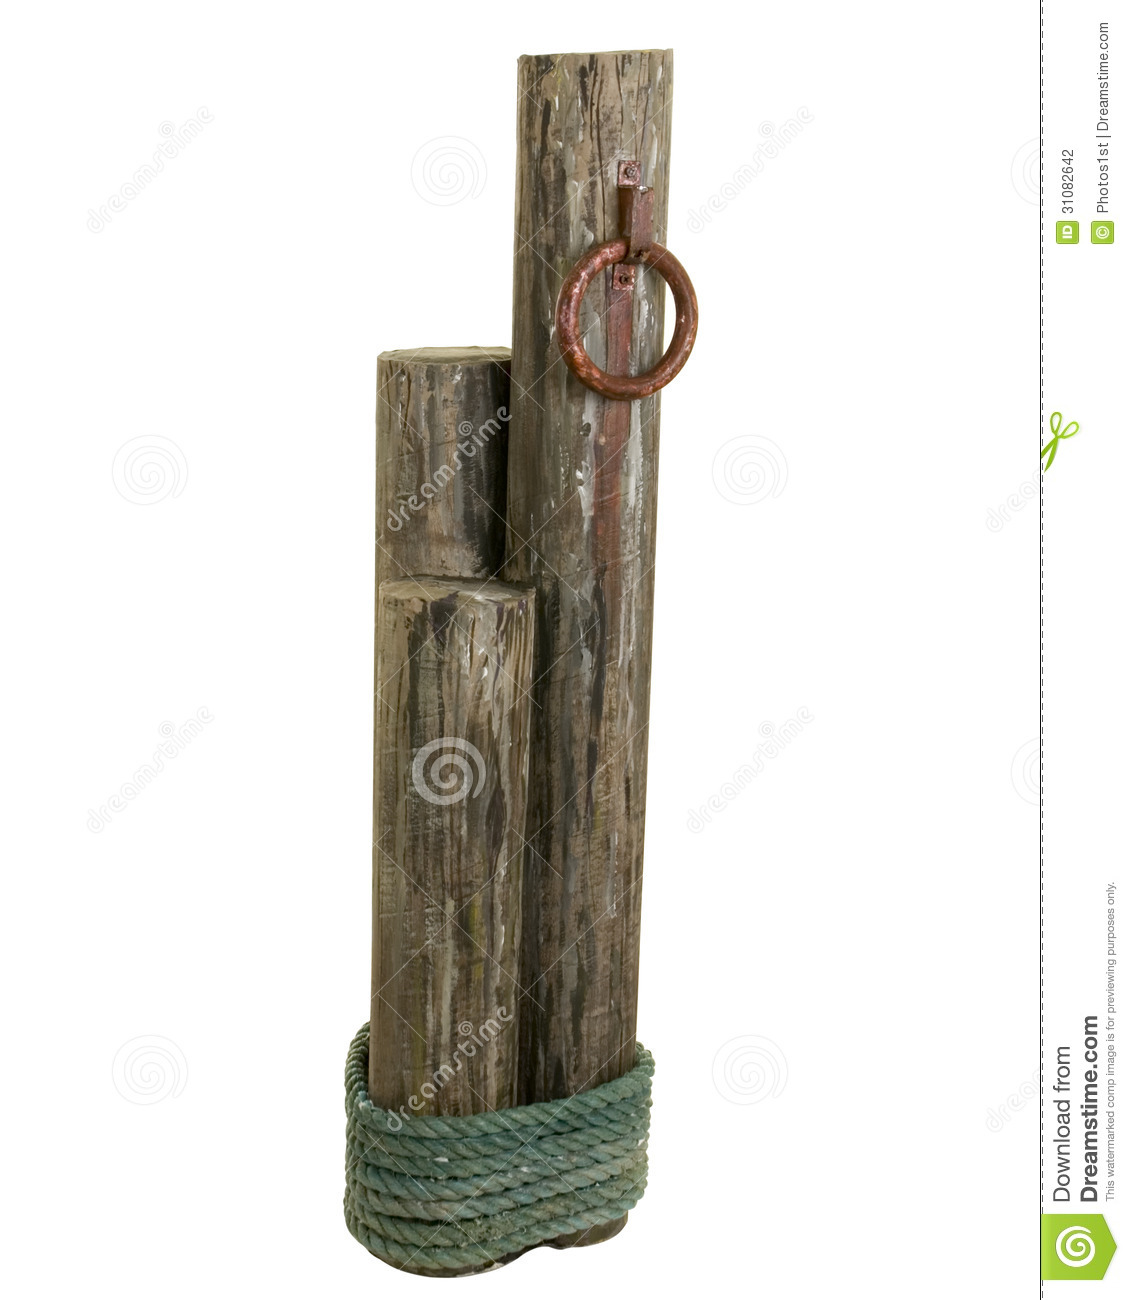 set of three wooden posts tied with rope for mooring a boat.